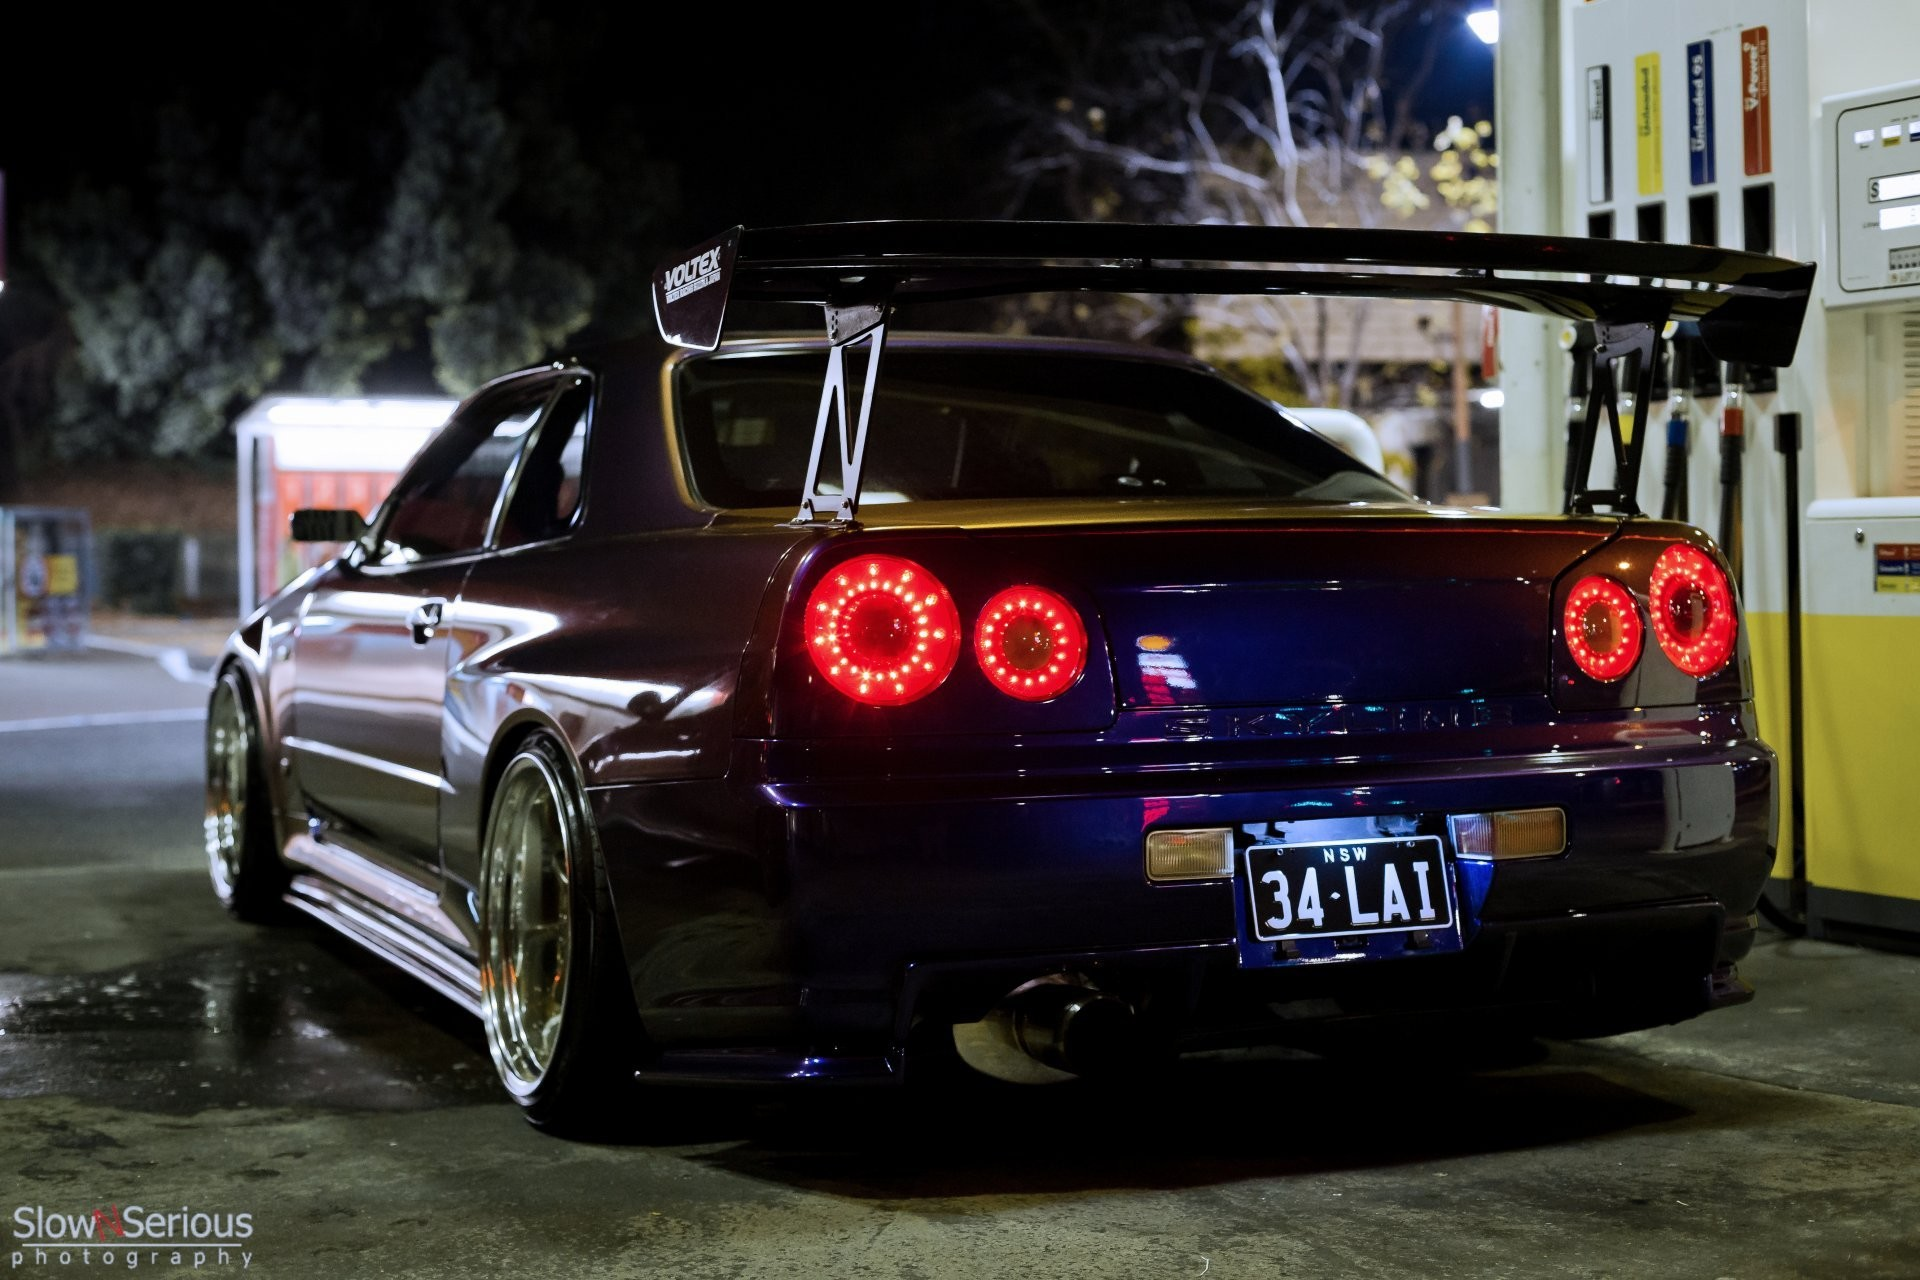 1920x1280 nissan skyline gt-r r34 nissan tuning night skyline